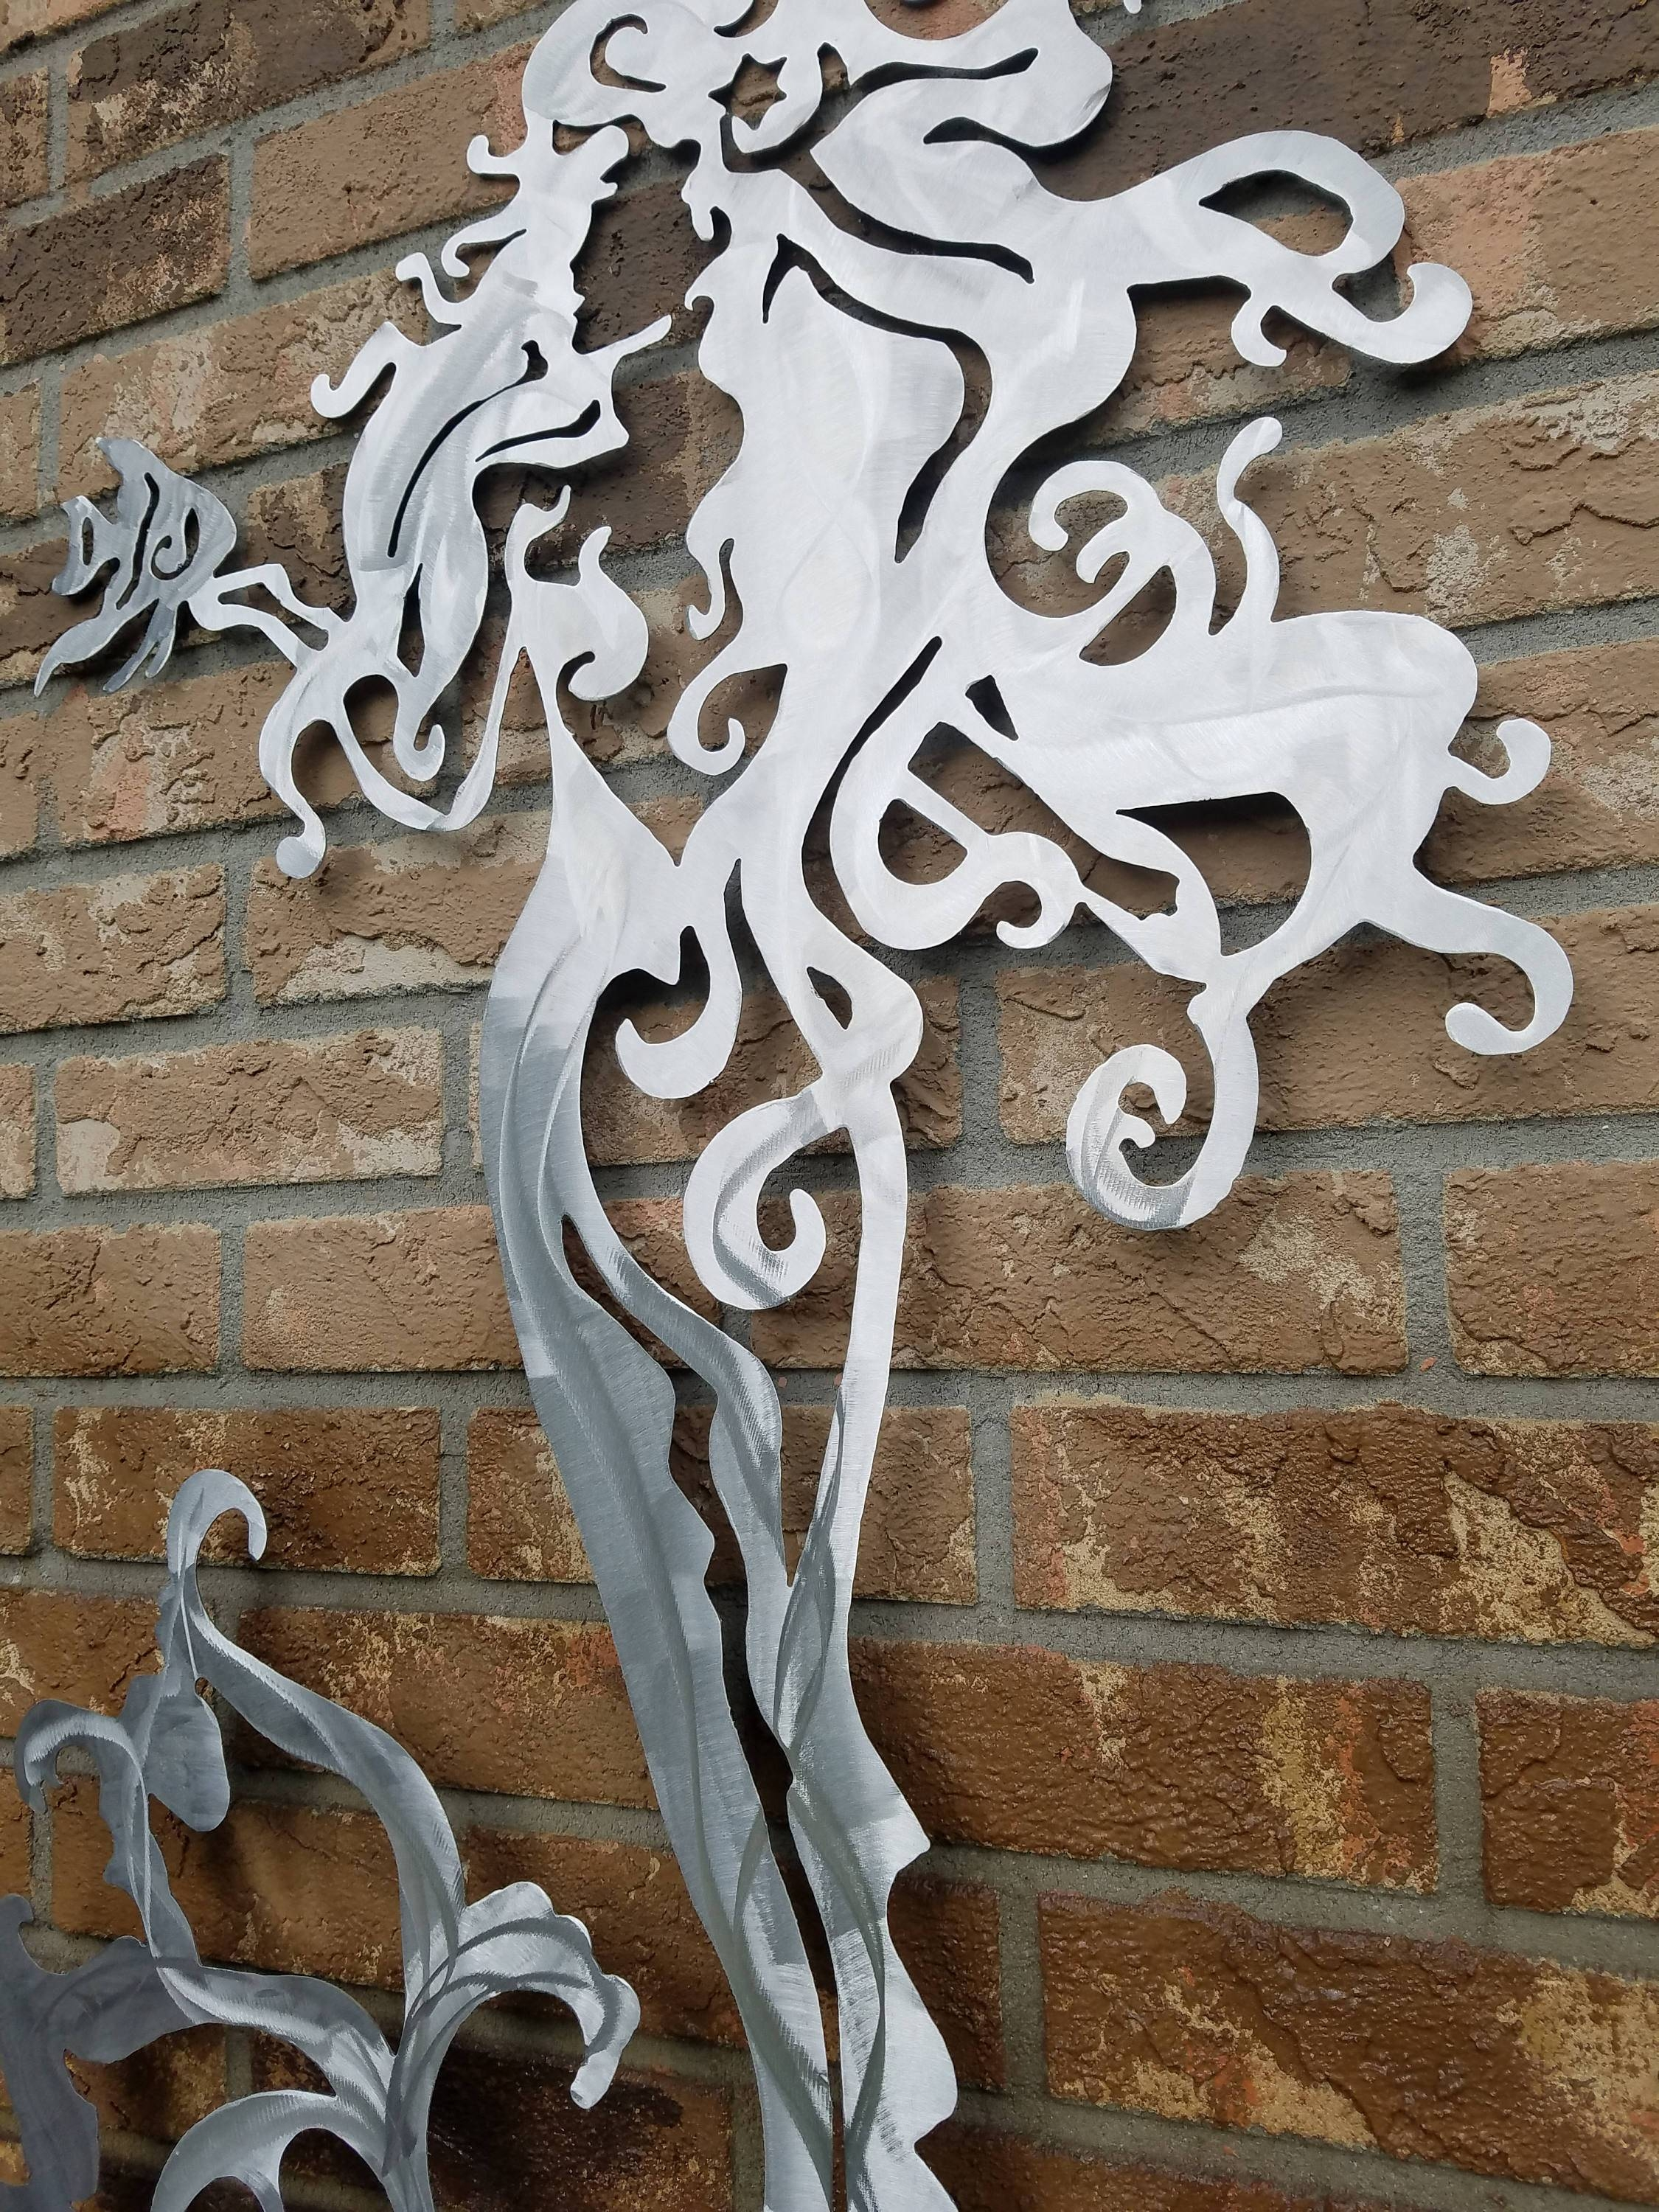 Mermaid Metal Wall Art, Aluminum Mermaid, Metal Mermaid, Fish Regarding Most Recent Mermaid Metal Wall Art (View 13 of 20)